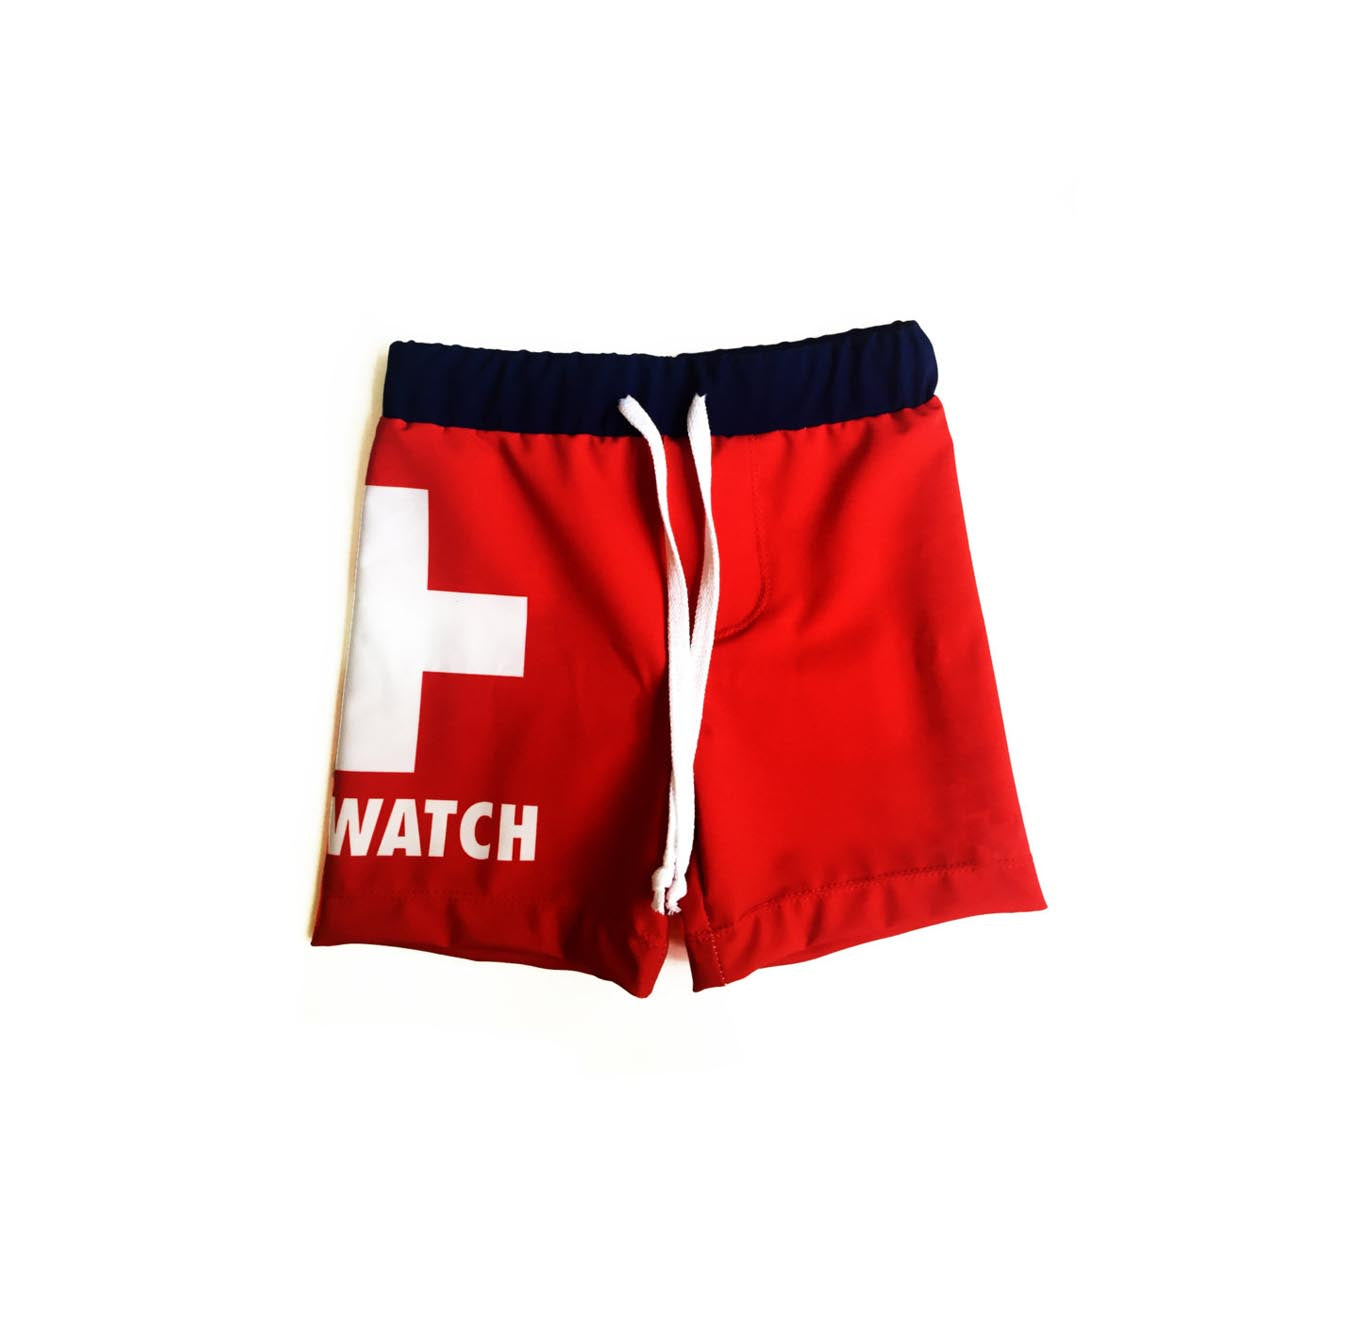 LIFEGUARD BOY SWIMSUIT